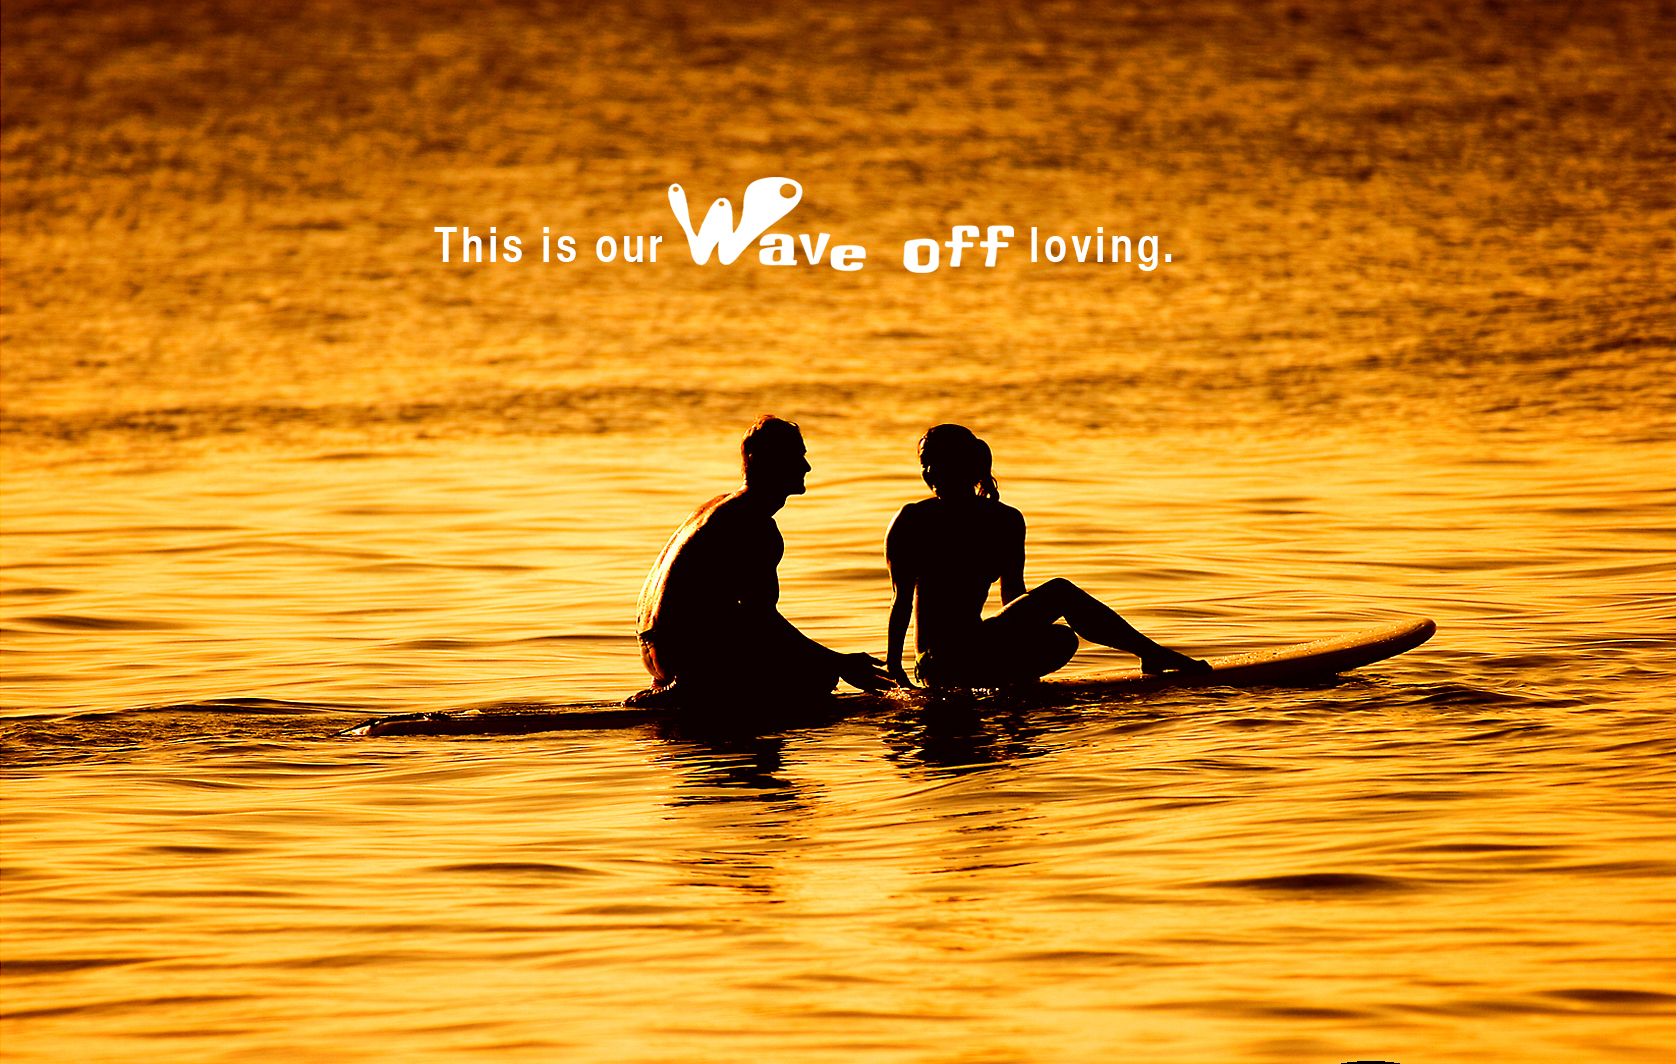 Wave off loving